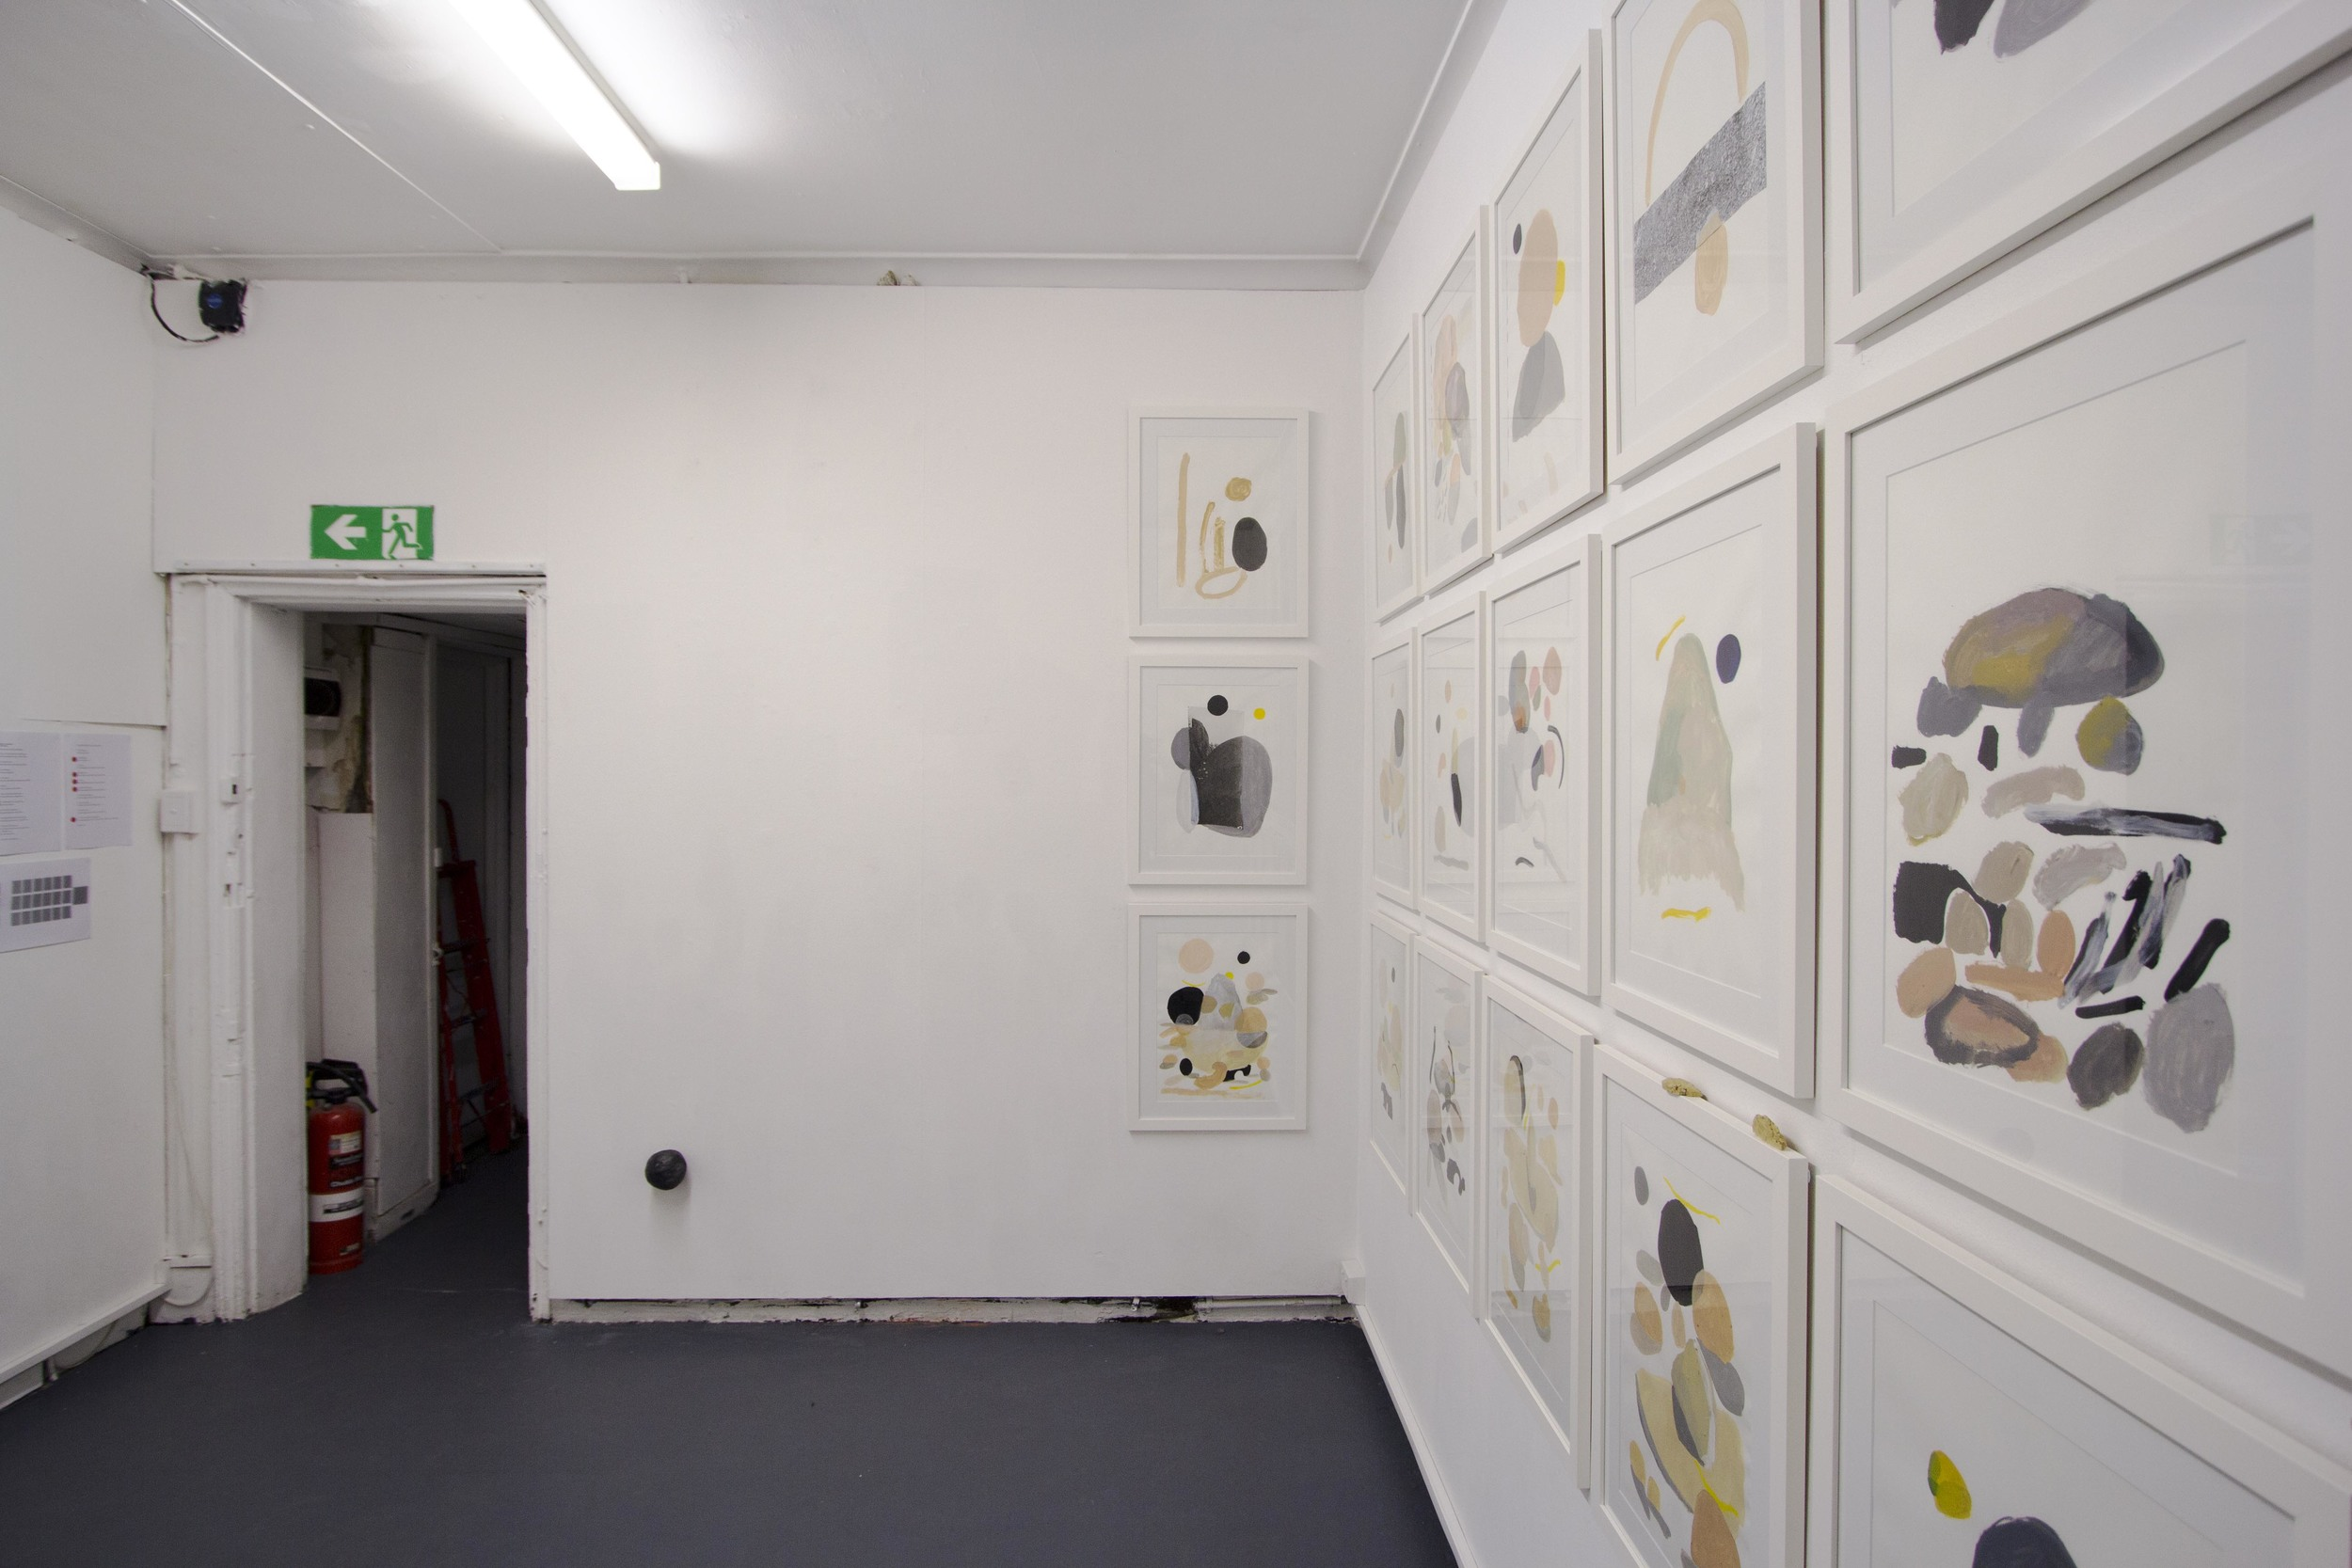 Time Circles installation SEVENTH gallery Eleanor Louise Butt 2014 V WEB.jpg